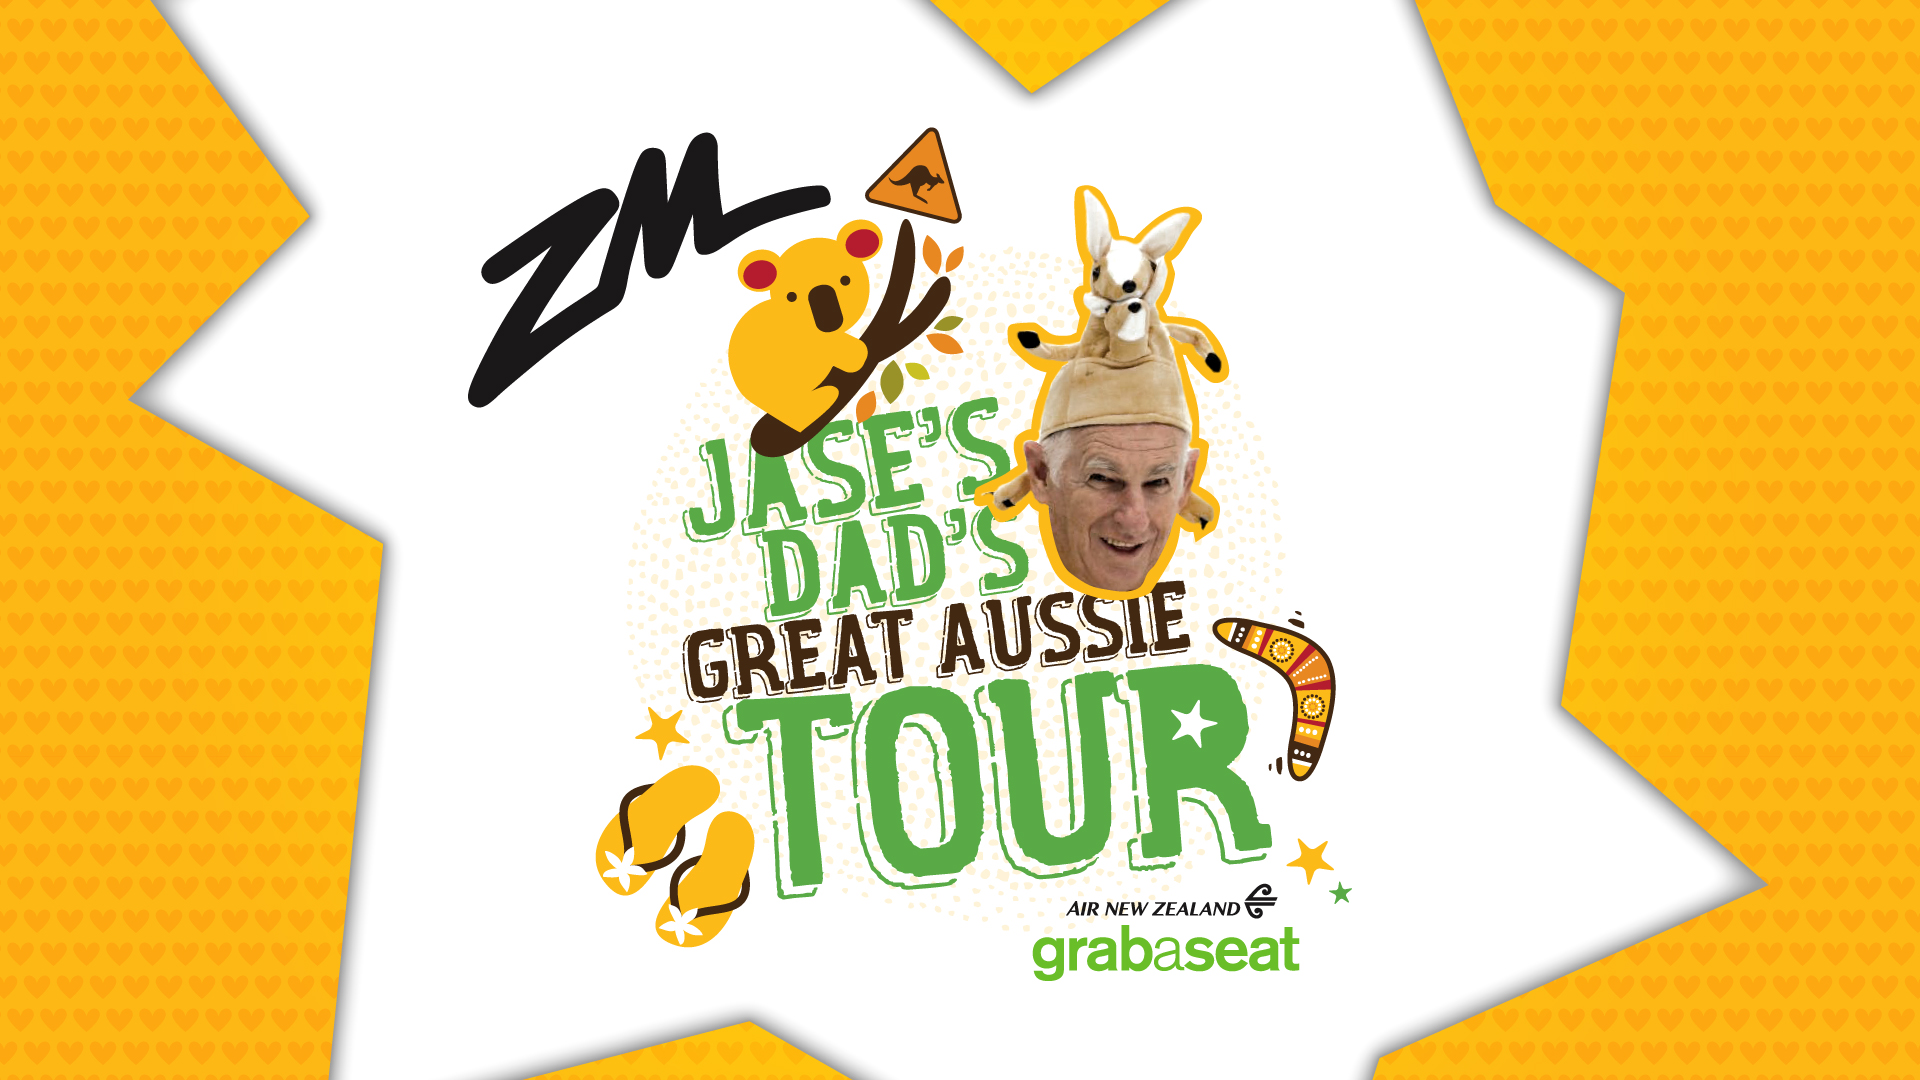 Register To Join The Great Aussie Tour